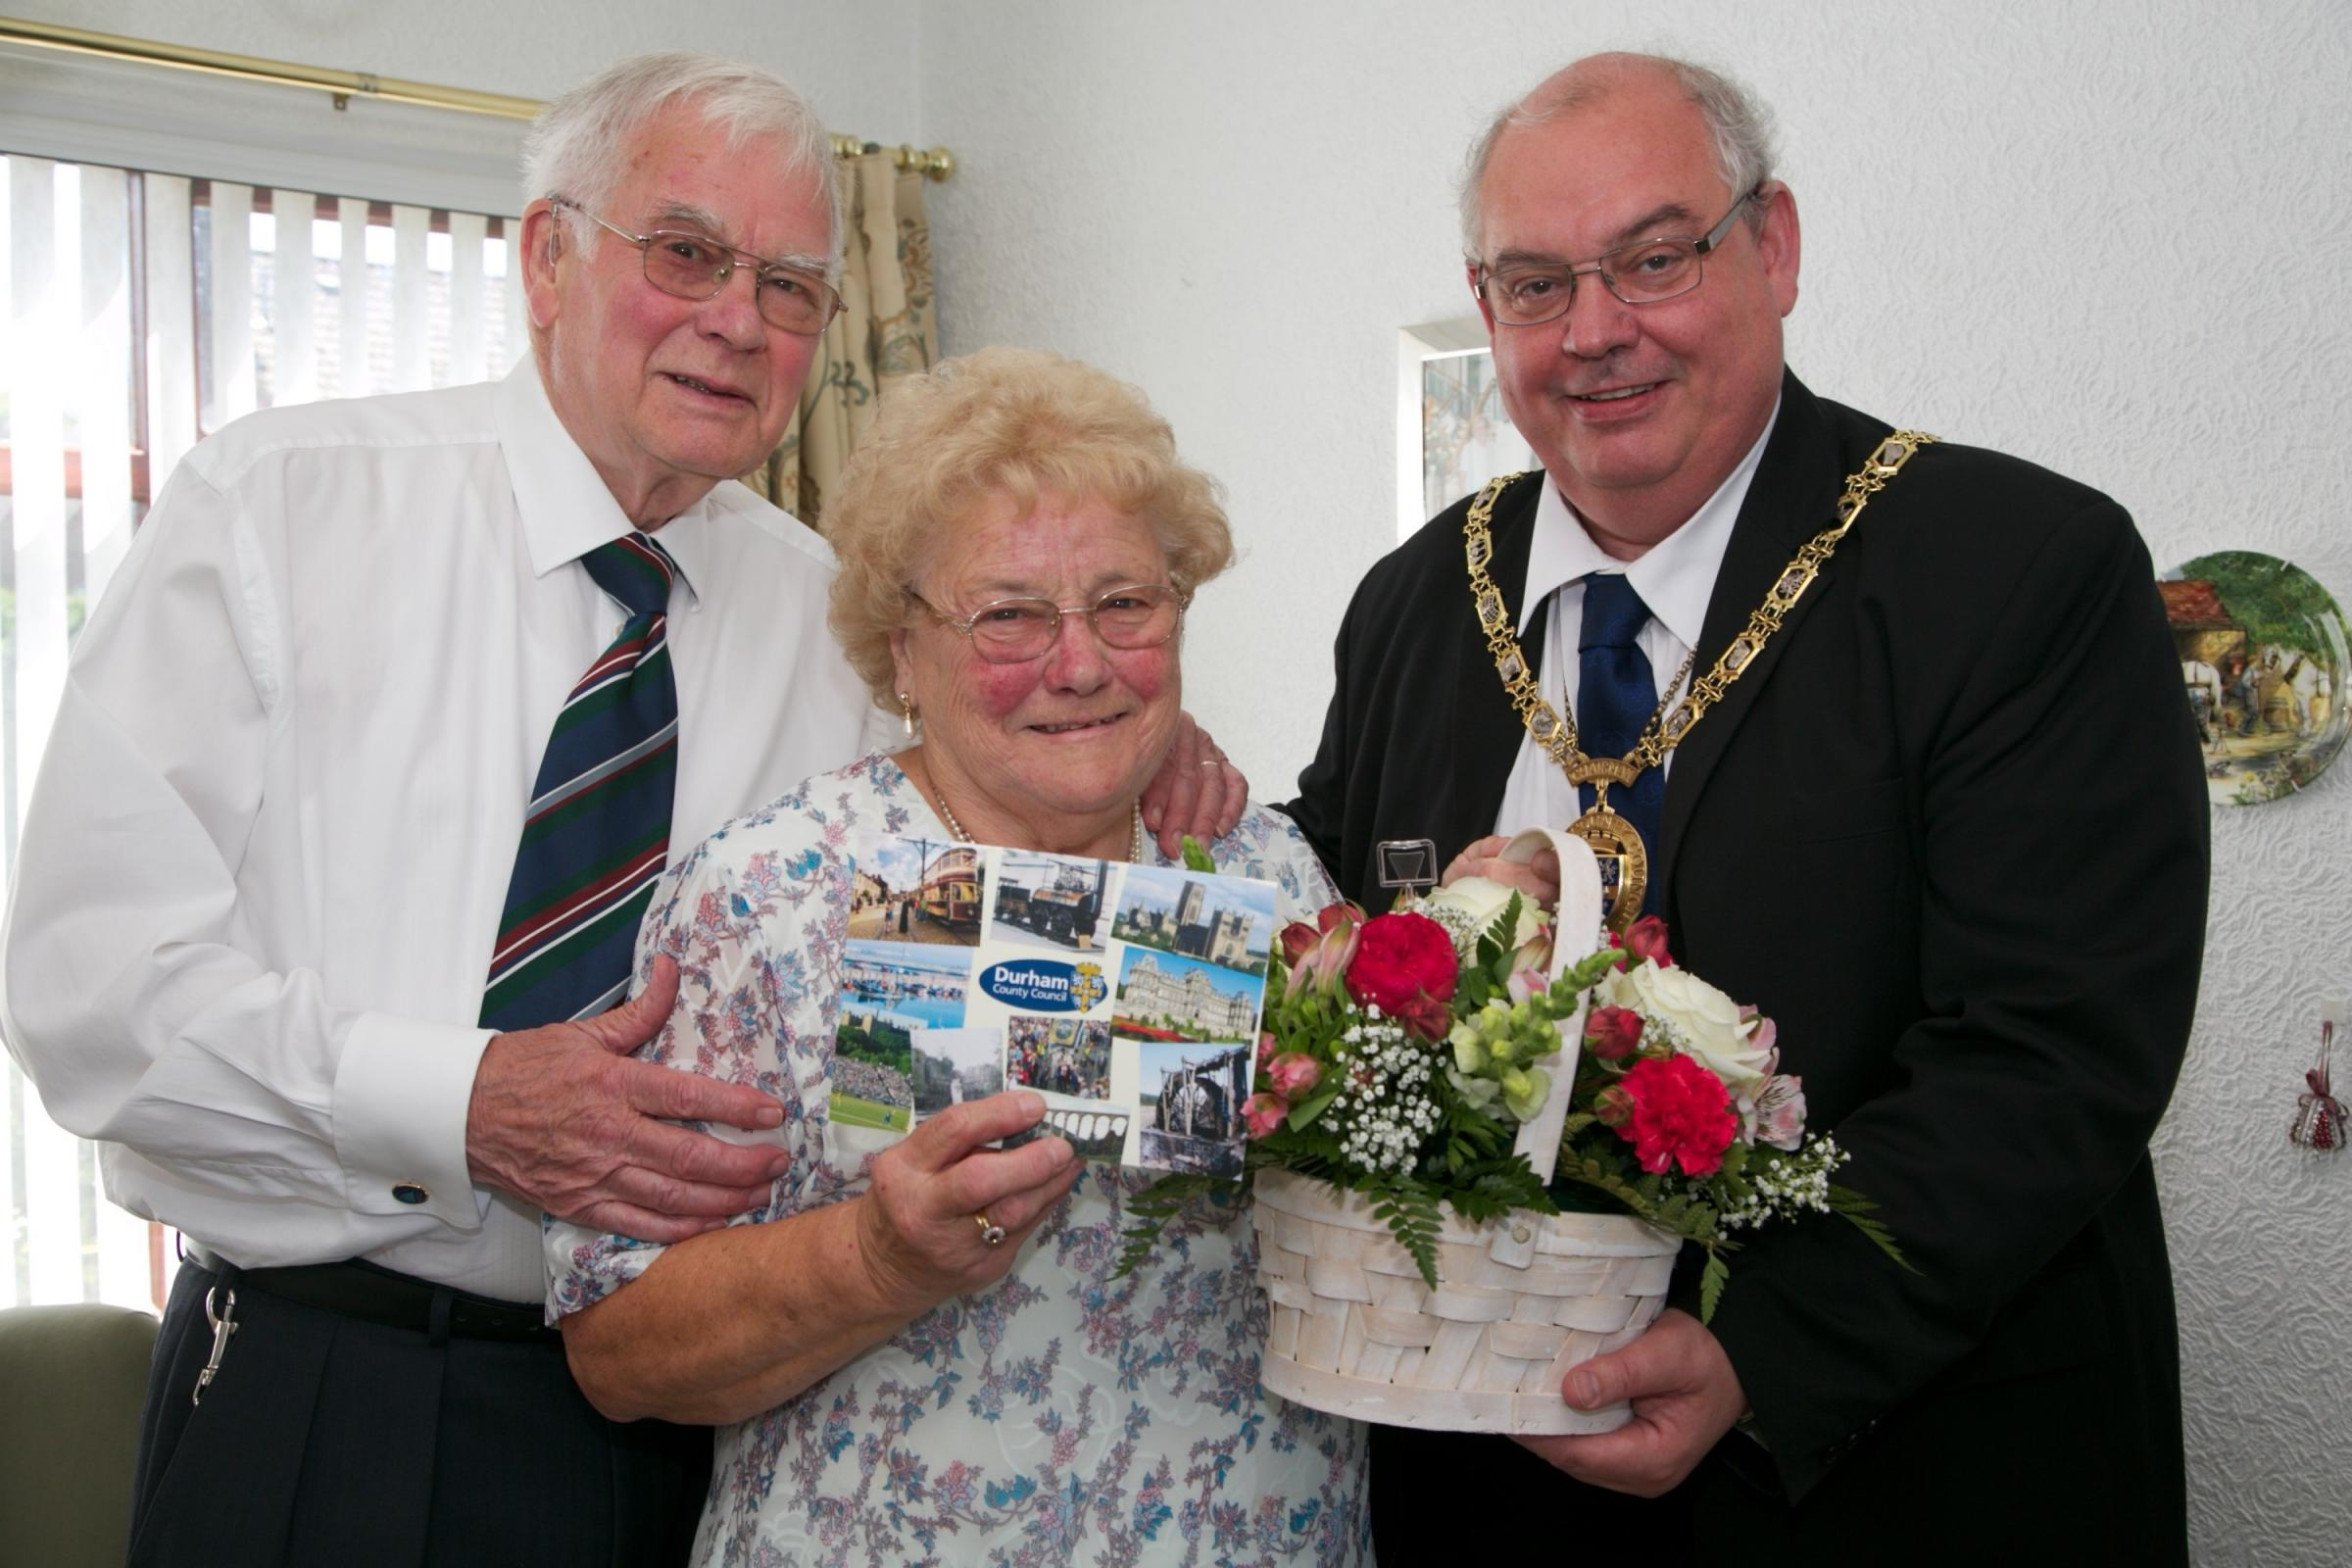 Former mayor and mayoress of Sedgefield celebrate 60 years or marital bliss